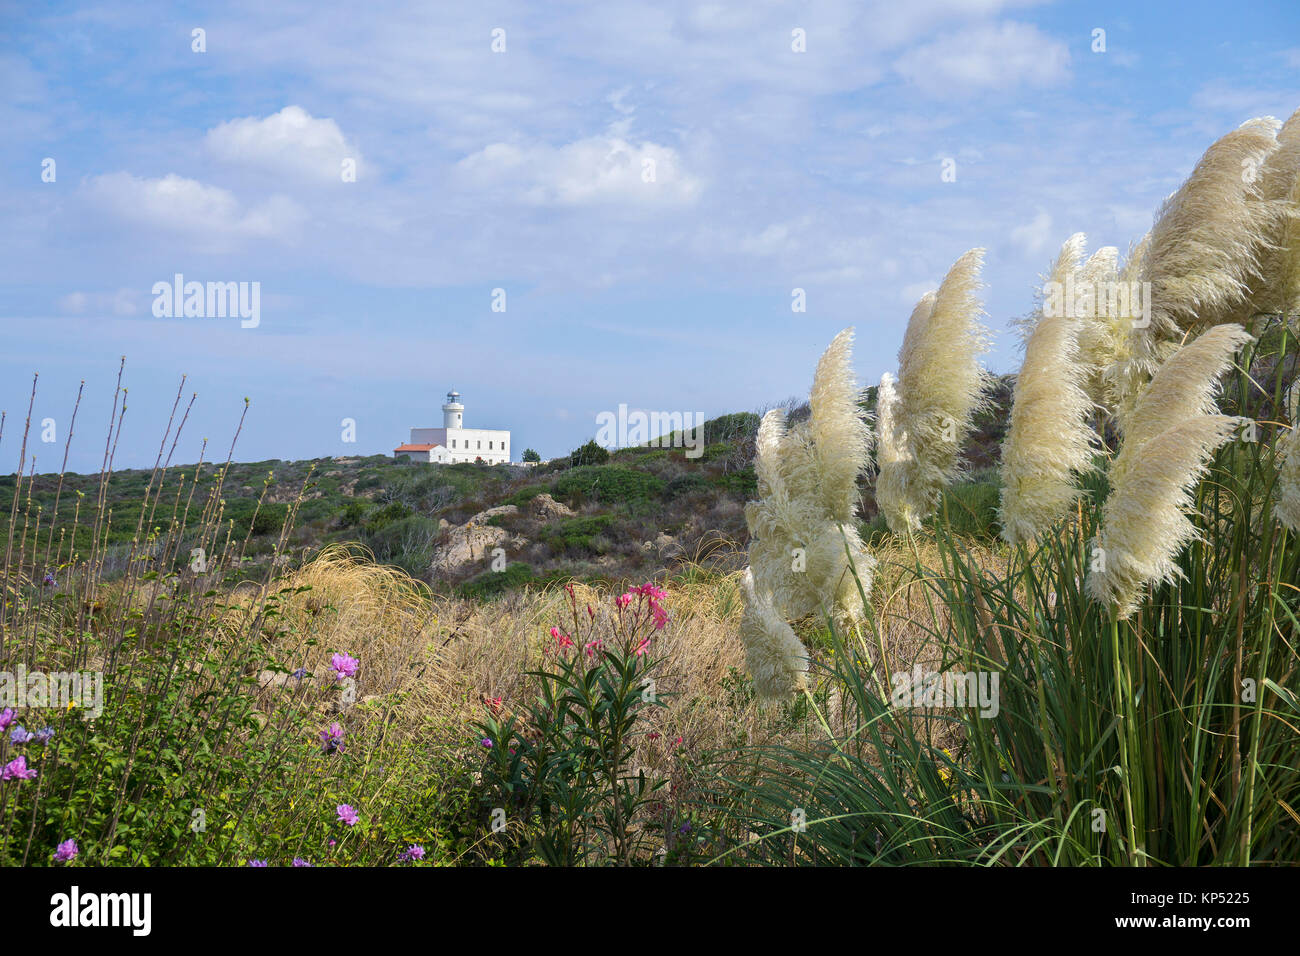 Pampas grass (Cortaderia selloana) and lighthouse, Capo Ferro, Costa Smeralda, Sardinia, Italy, Mediterranean sea, Stock Photo